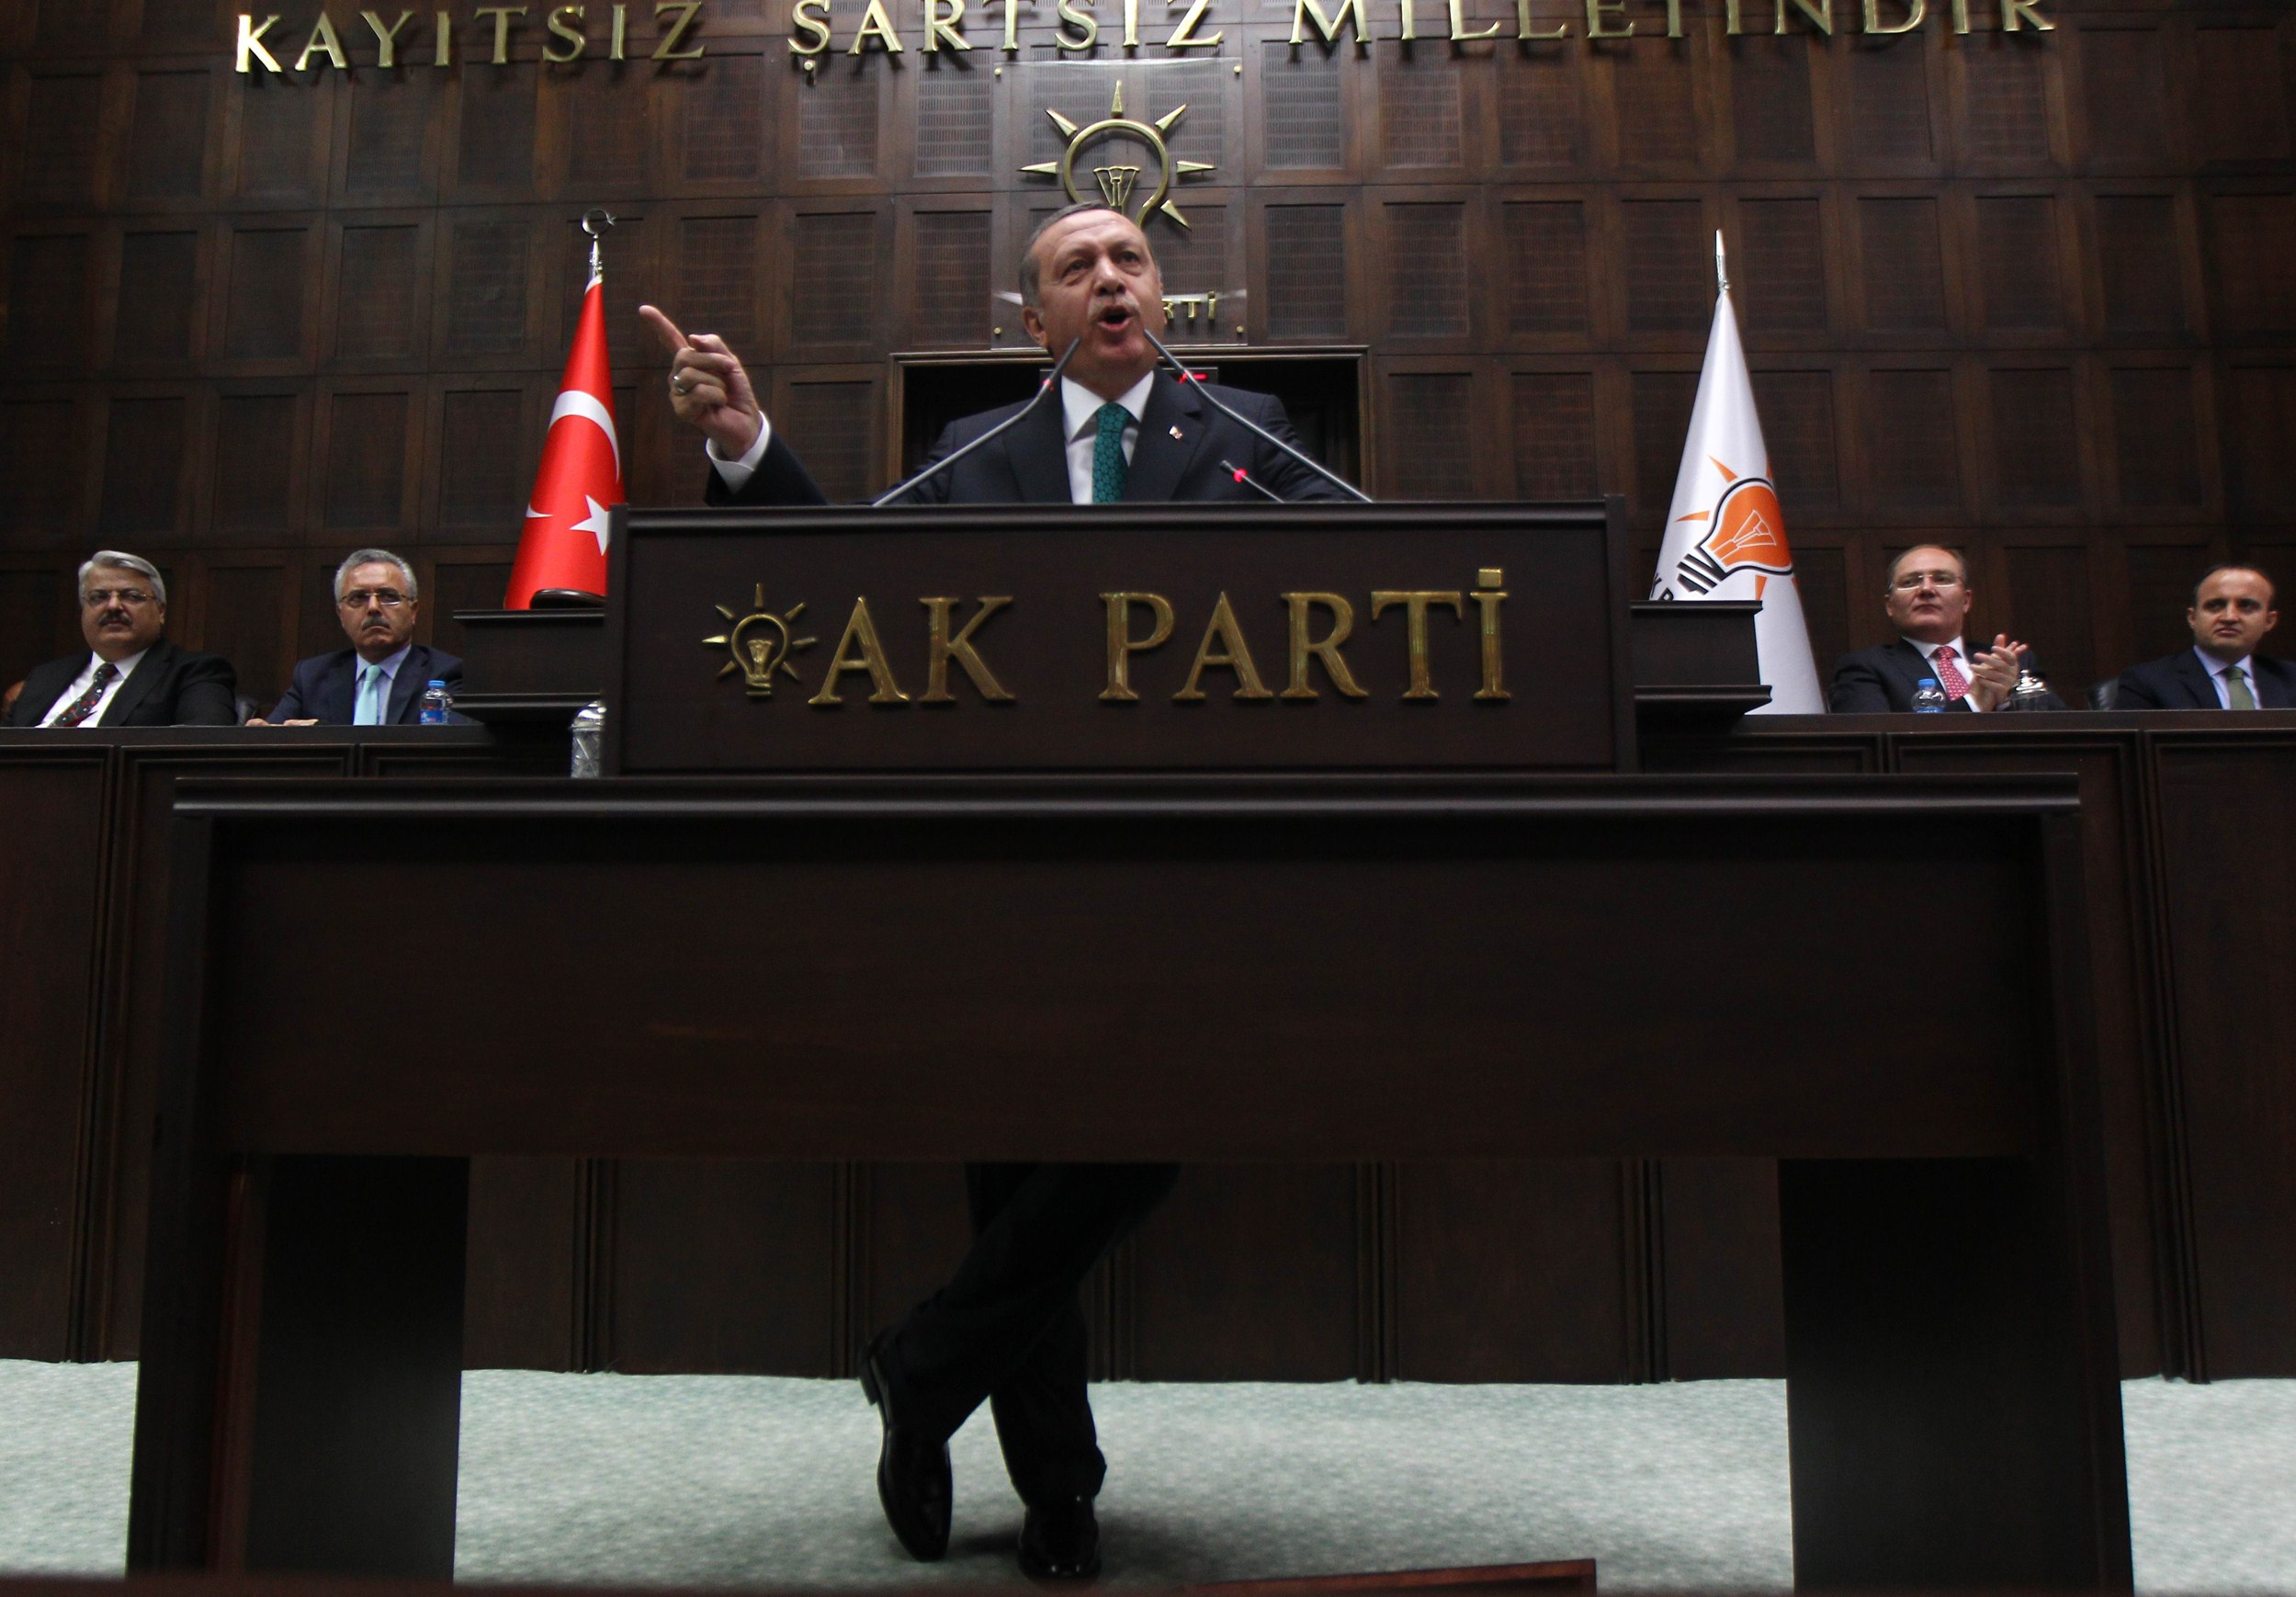 Turkey's Prime Minister Recep Tayyip Erdogan addresses members of the parliament of his ruling AK Party (AKP) during a meeting at the Turkish Parliament in Ankara on June 24, 2014.  (AFP PHOTO/ADEM ALTAN)